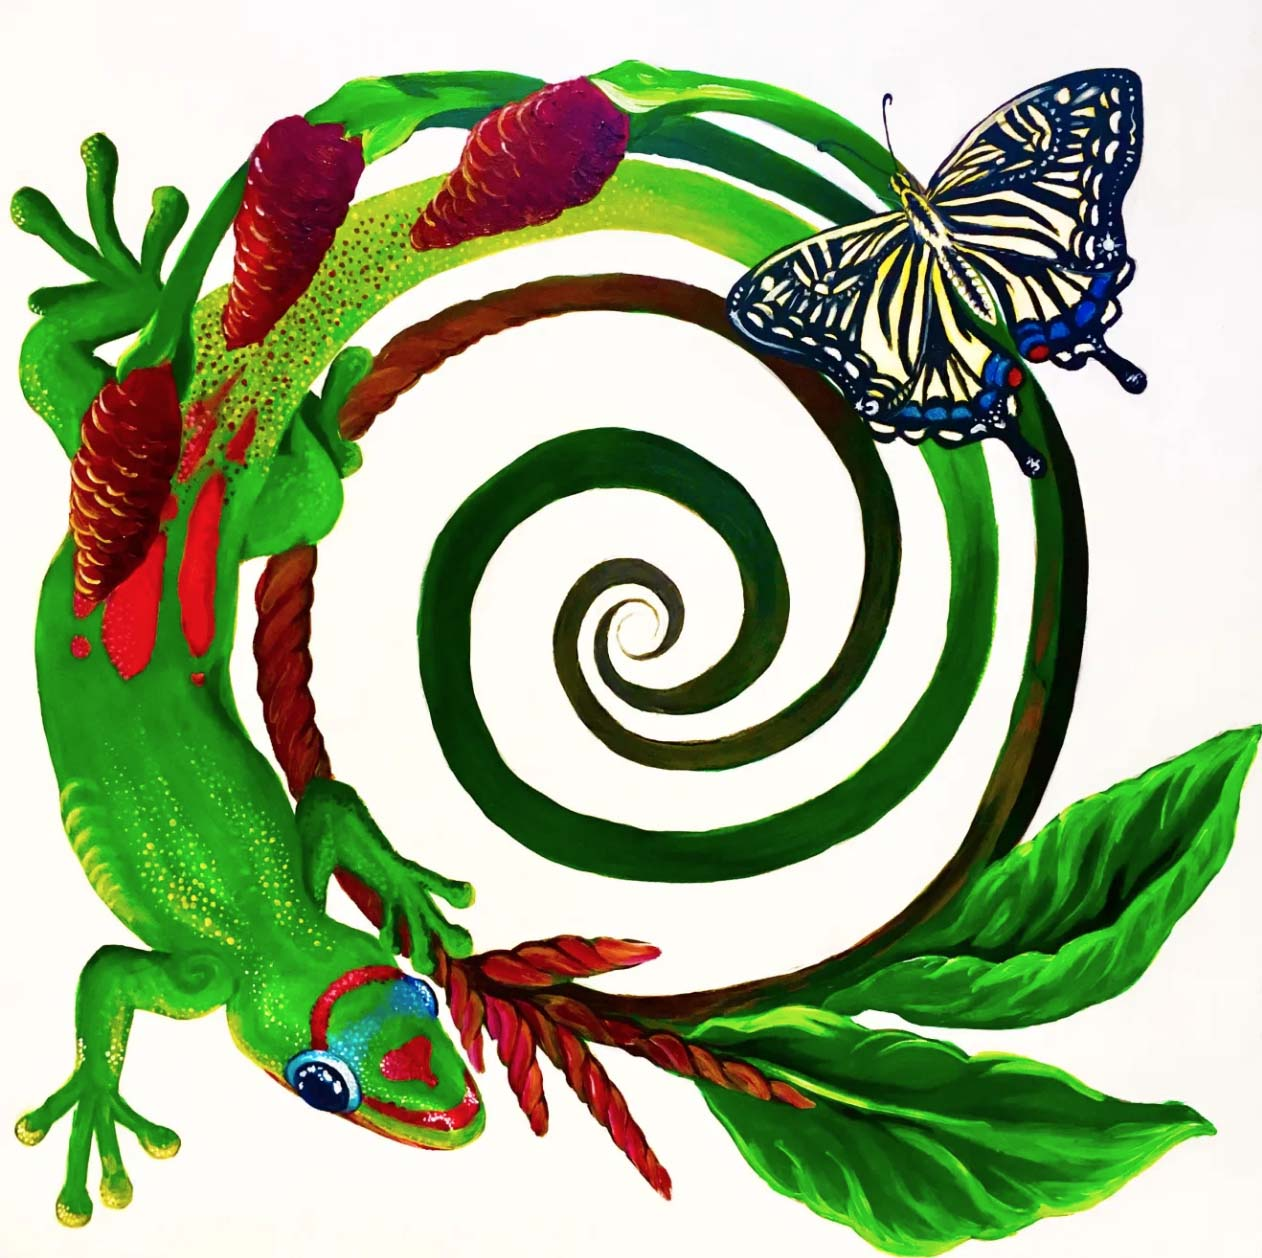 The image is a painting of a Rainbow Day  Gecko and a Eastern Swallow Tail Butterfly on top of a spiral.